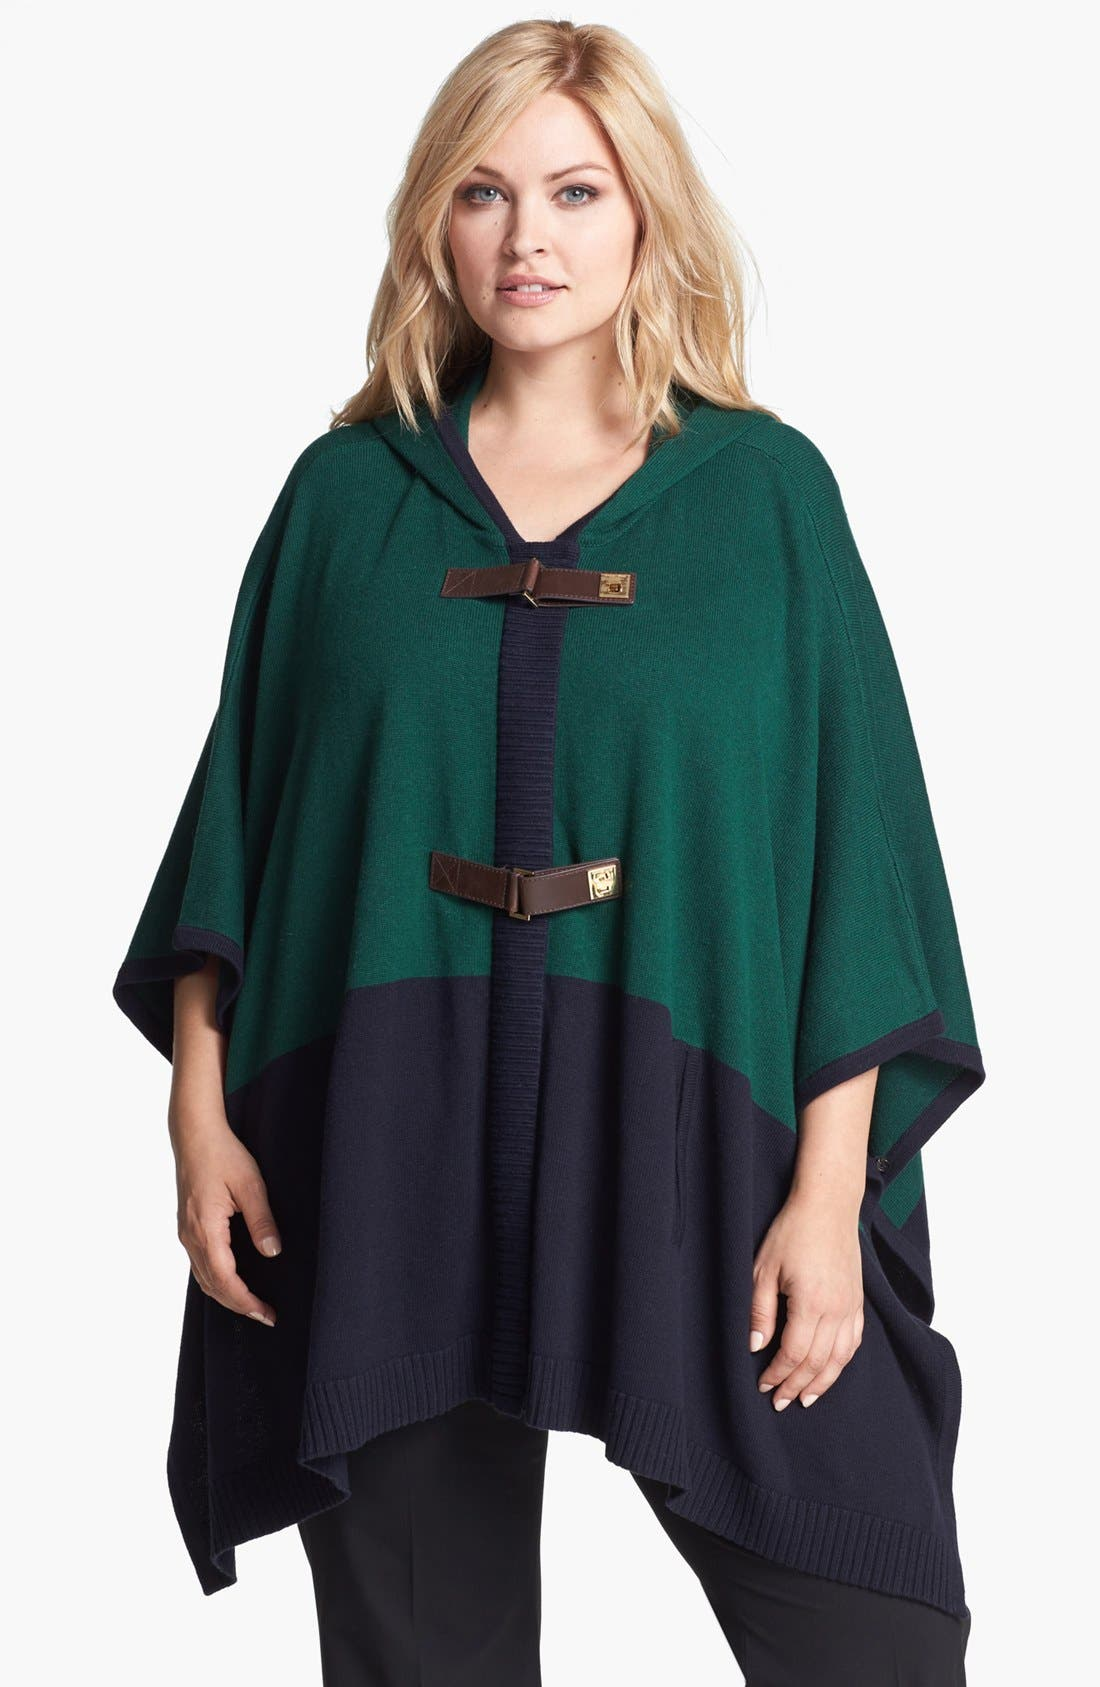 Alternate Image 1 Selected - MICHAEL Michael Kors Colorblock Poncho Sweater (Plus Size)